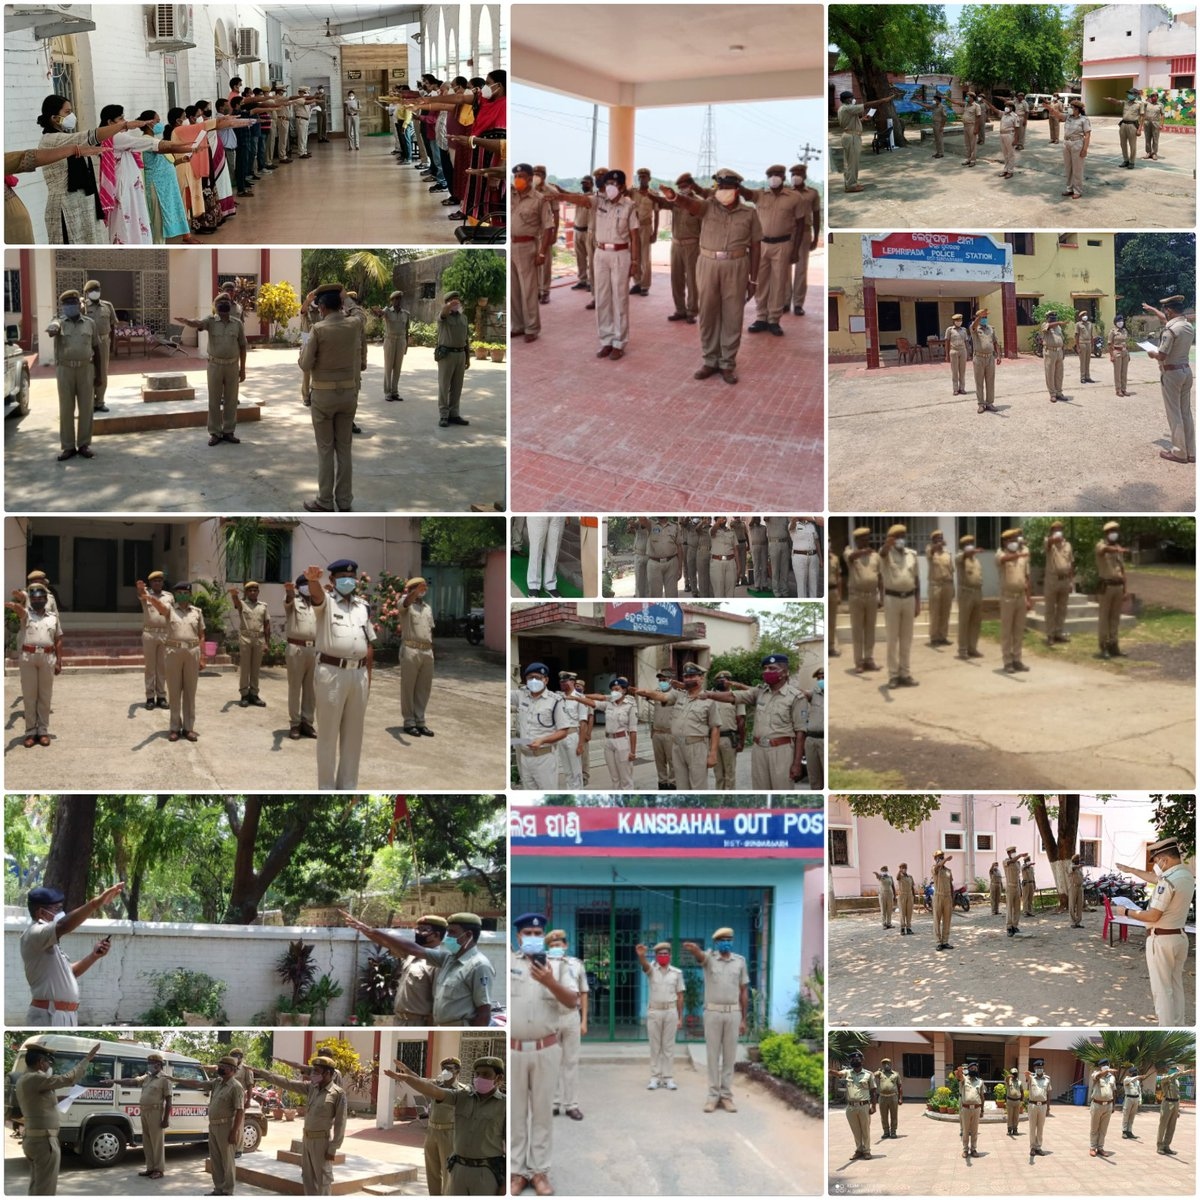 All police personnel of Sundargarh district took oath today, on Anti Terrorism Day to continue to fight against divisive acts of terrorism. #antiterrorism must be the motto of every democracy. @DGPOdisha @odisha_police @digwrrkl @sagarika_nath https://t.co/N8oBmdWENr